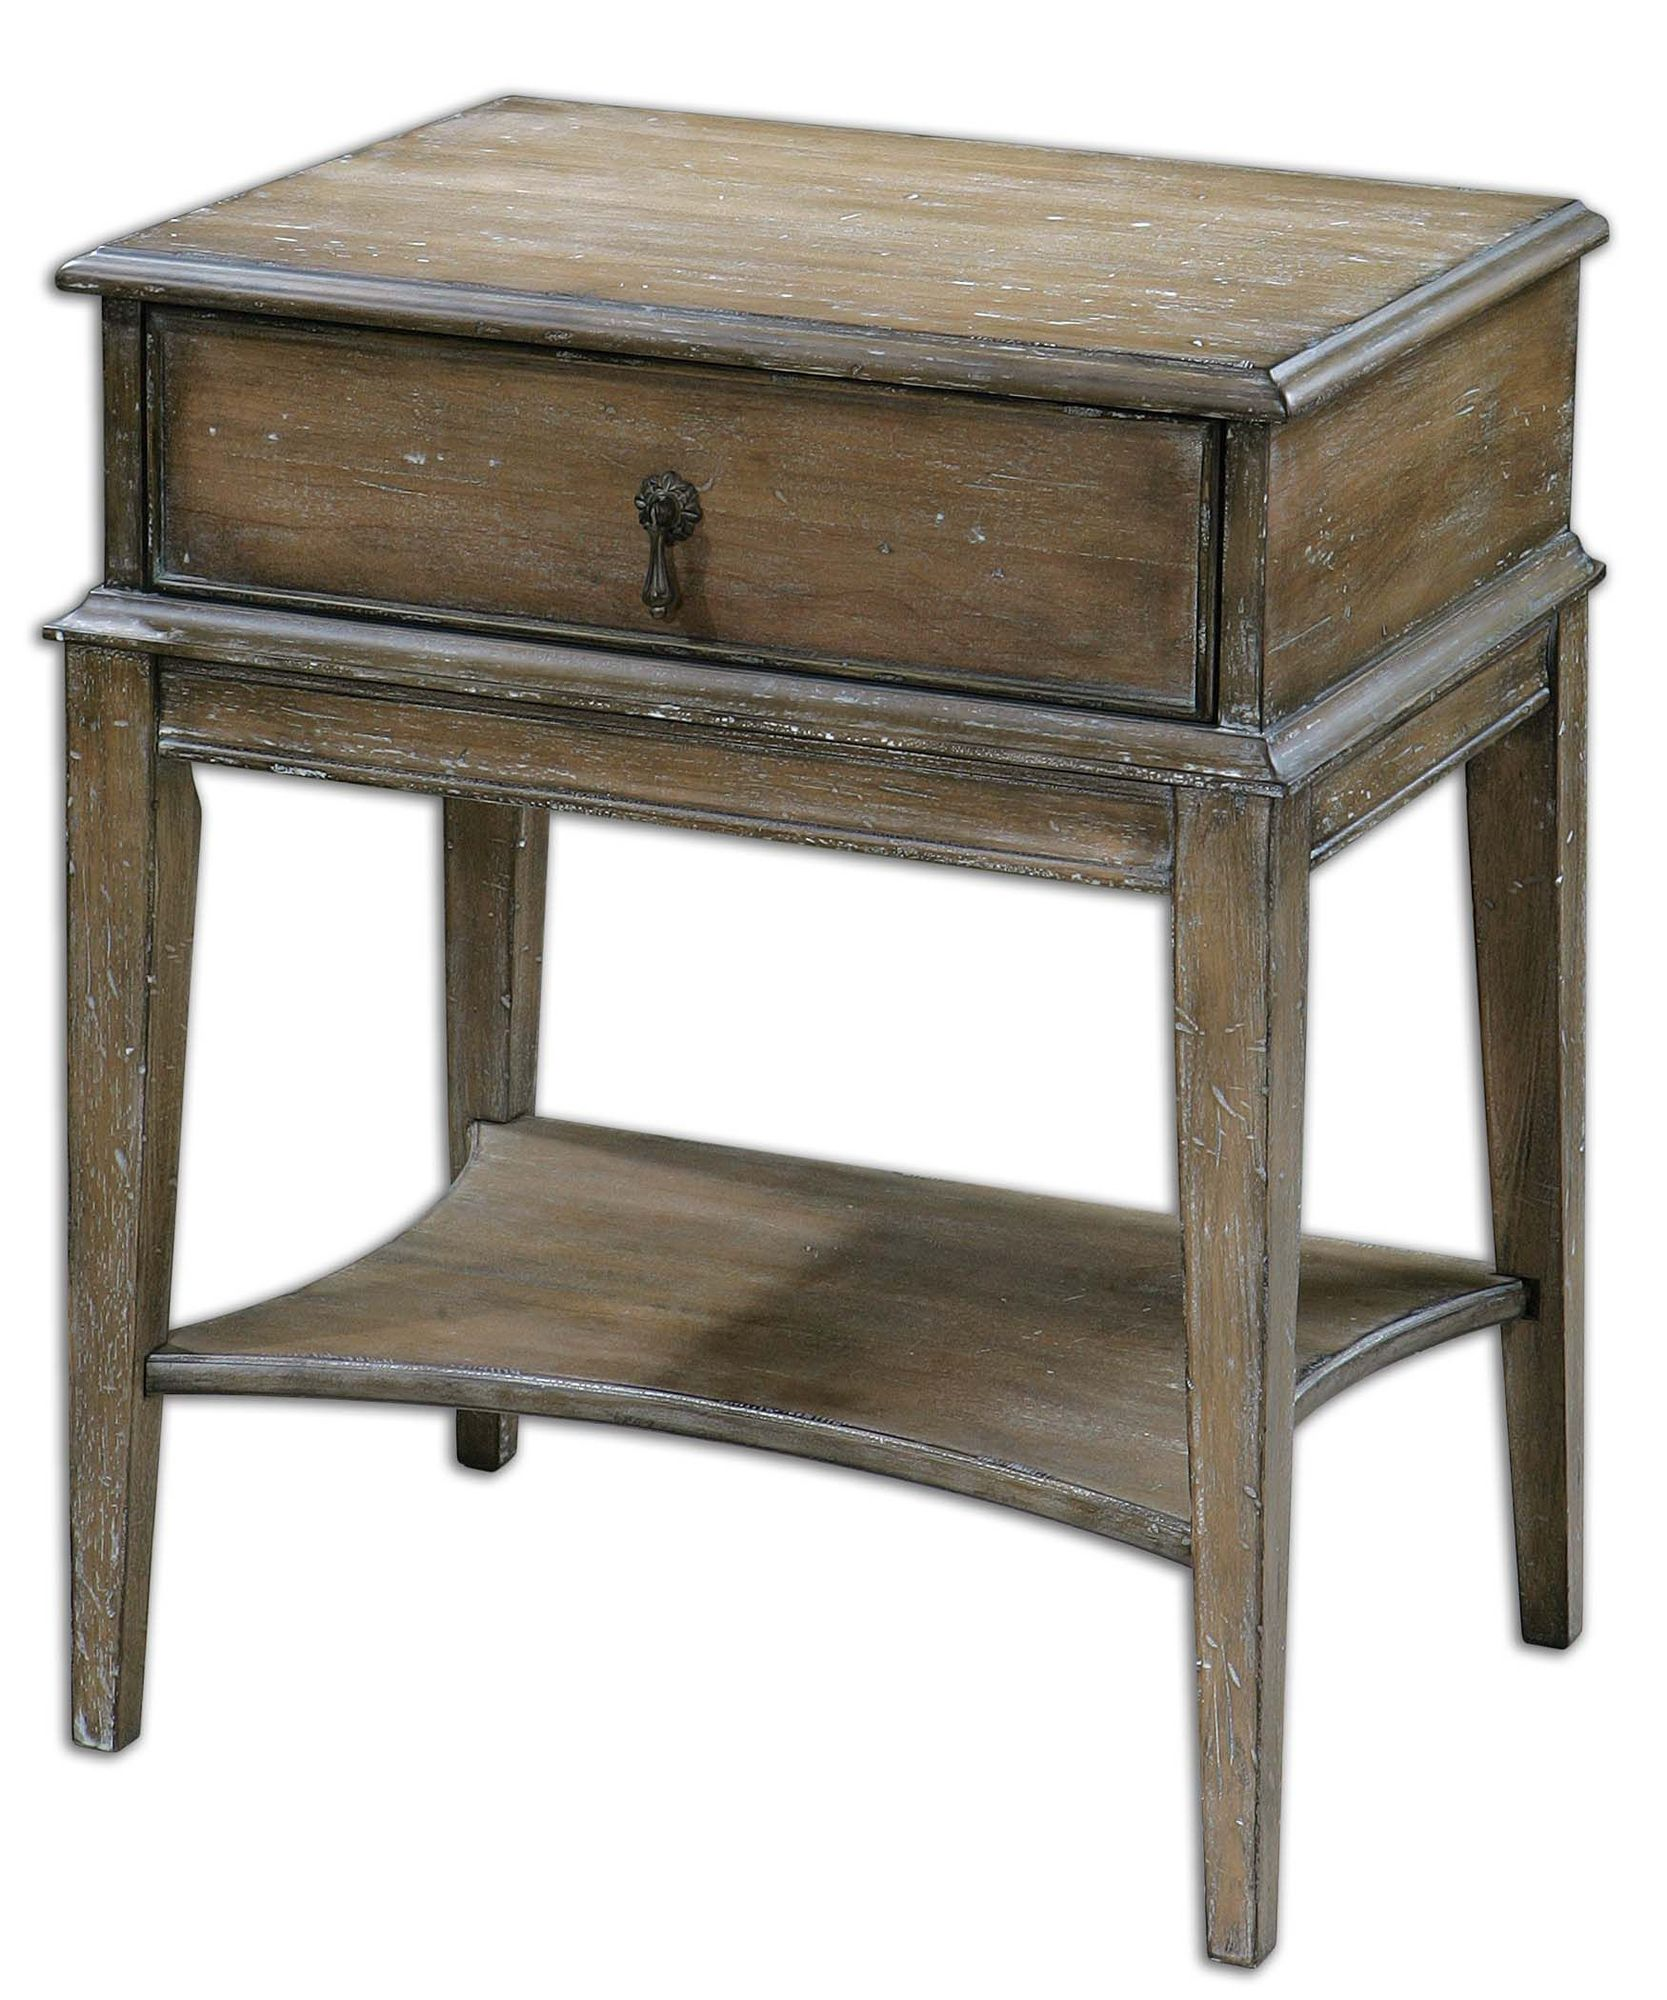 one drawer accent table weathered pine mathis brothers furniture dale tiffany northlake lamp black and white pottery barn reclaimed wood dining small outdoor patio oriental